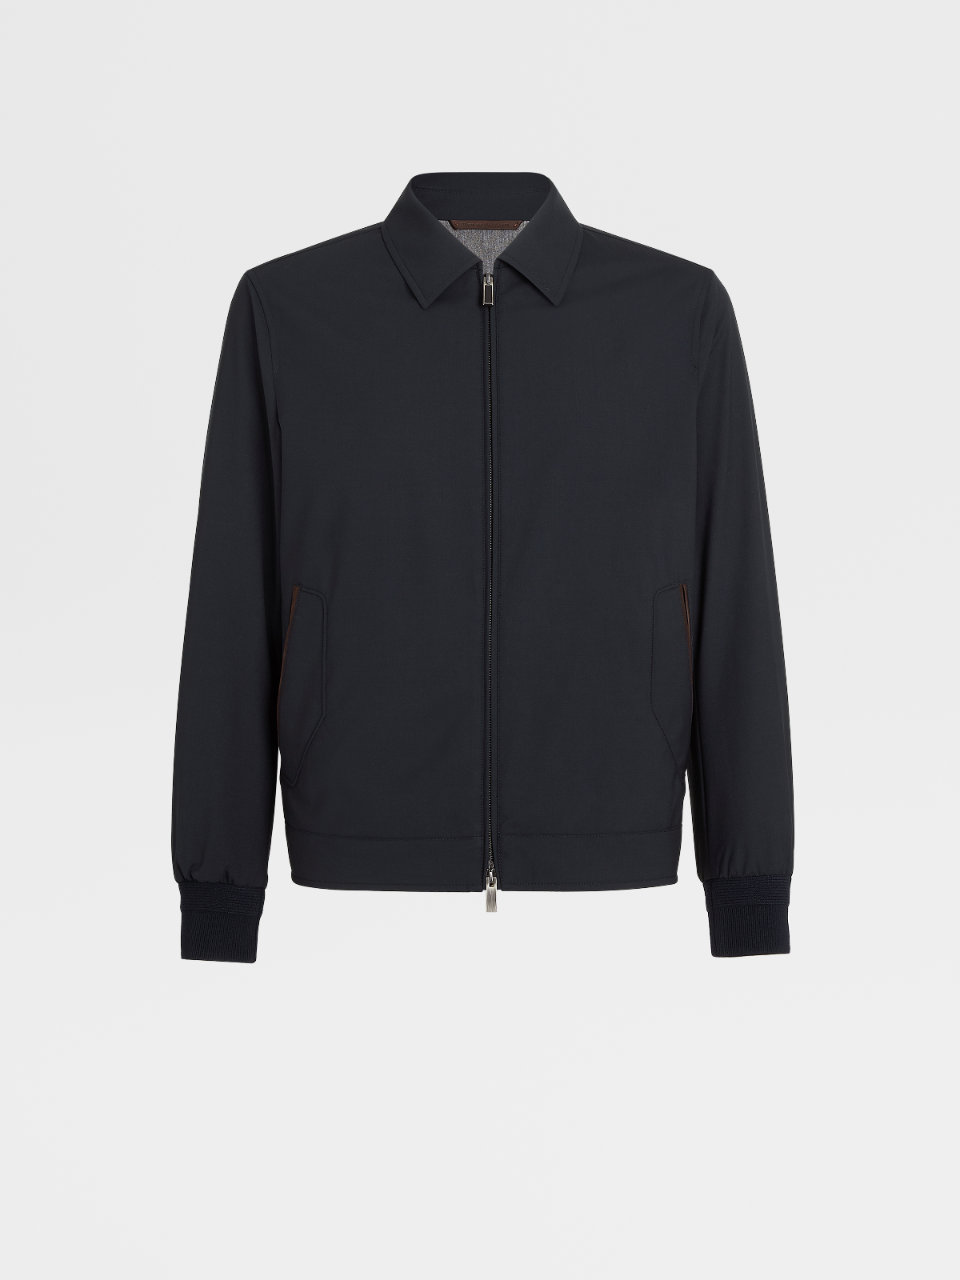 TrofeoTM Wool Shirt Jacket